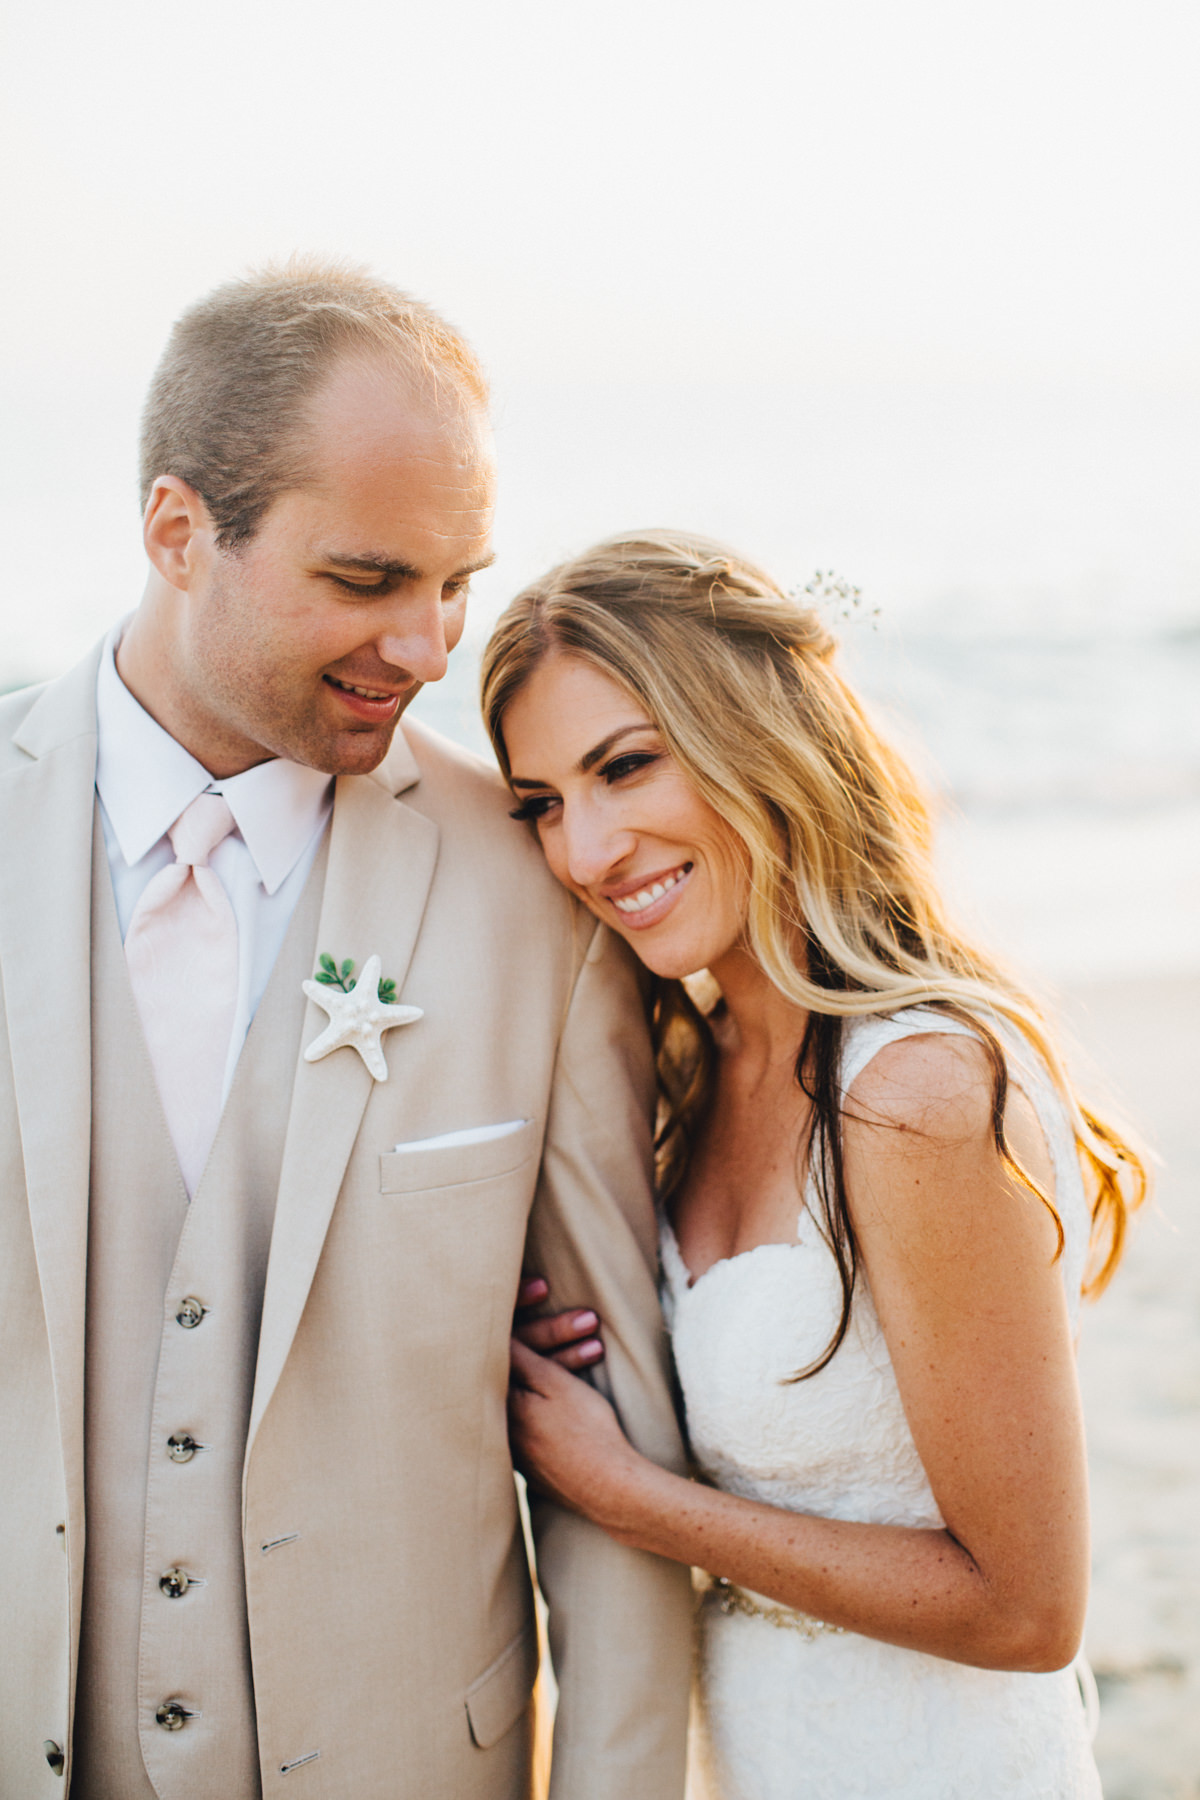 Hotel Laguna Beach Wedding Elopement San Diego OC Portrait + Wedding Photographer Martina Micko Photo 46